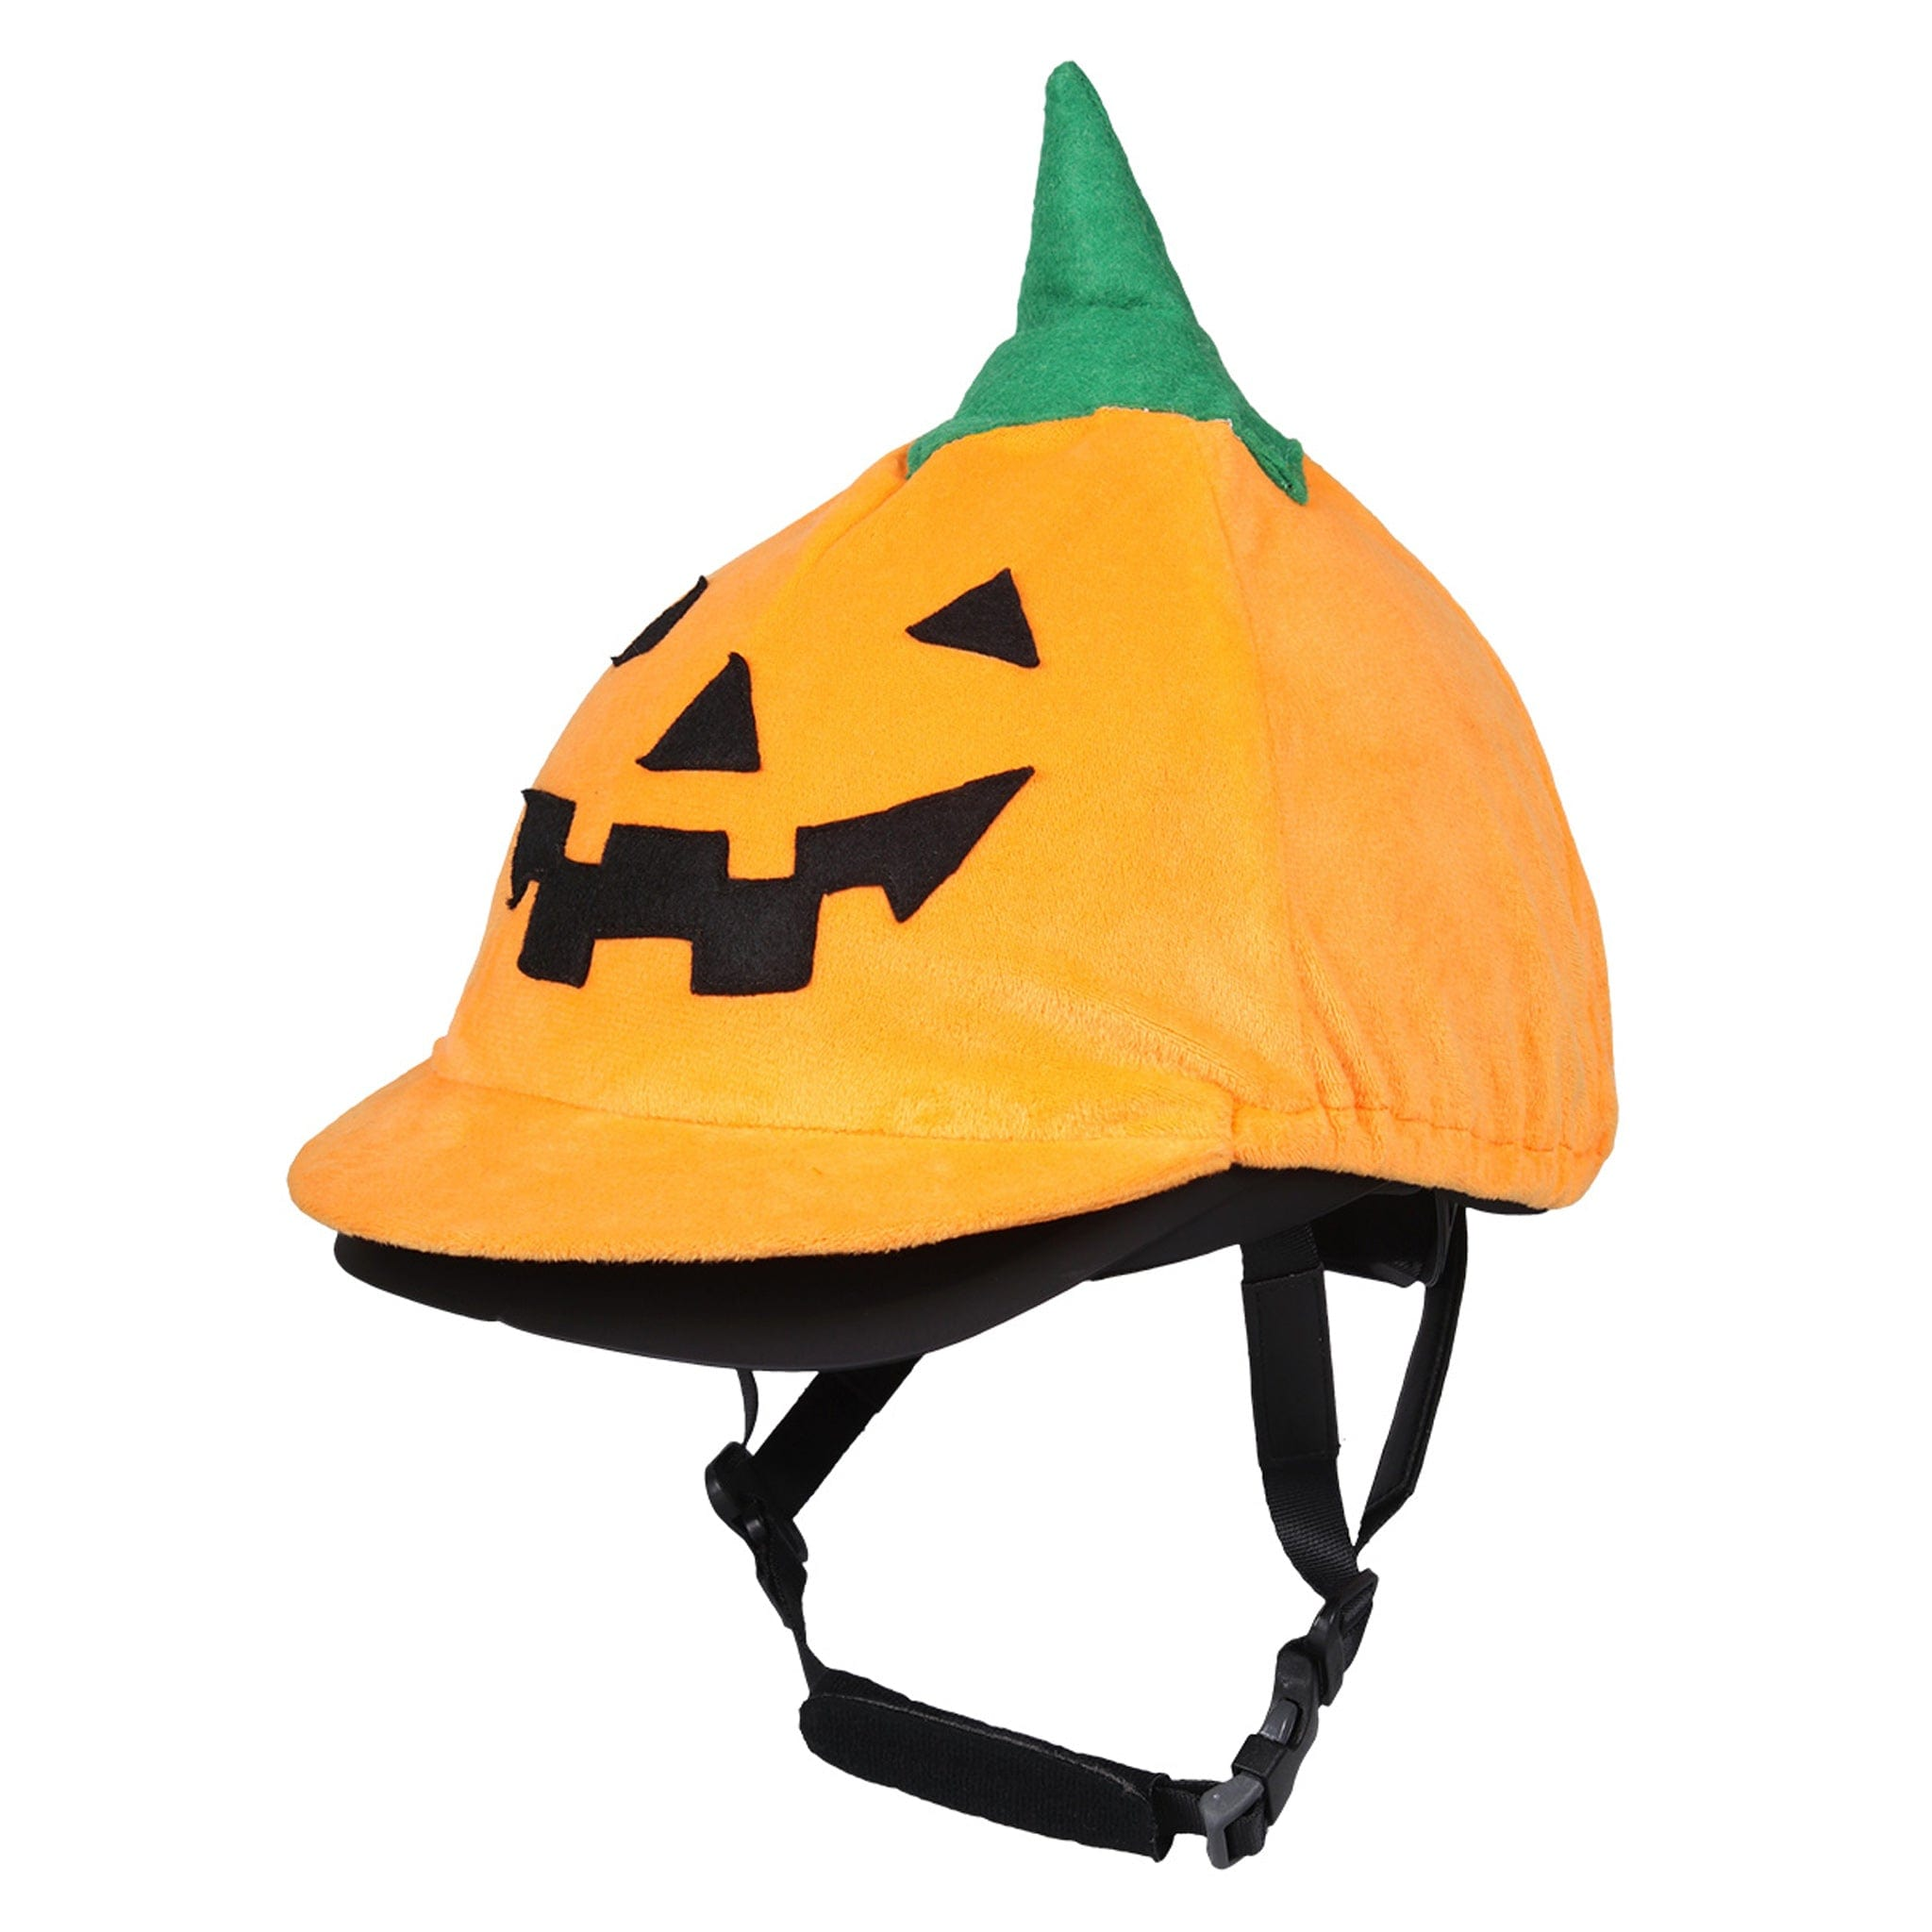 QHP Halloween Helmet Cover 8548 Orange Pumpkin Fleece Hat Silk